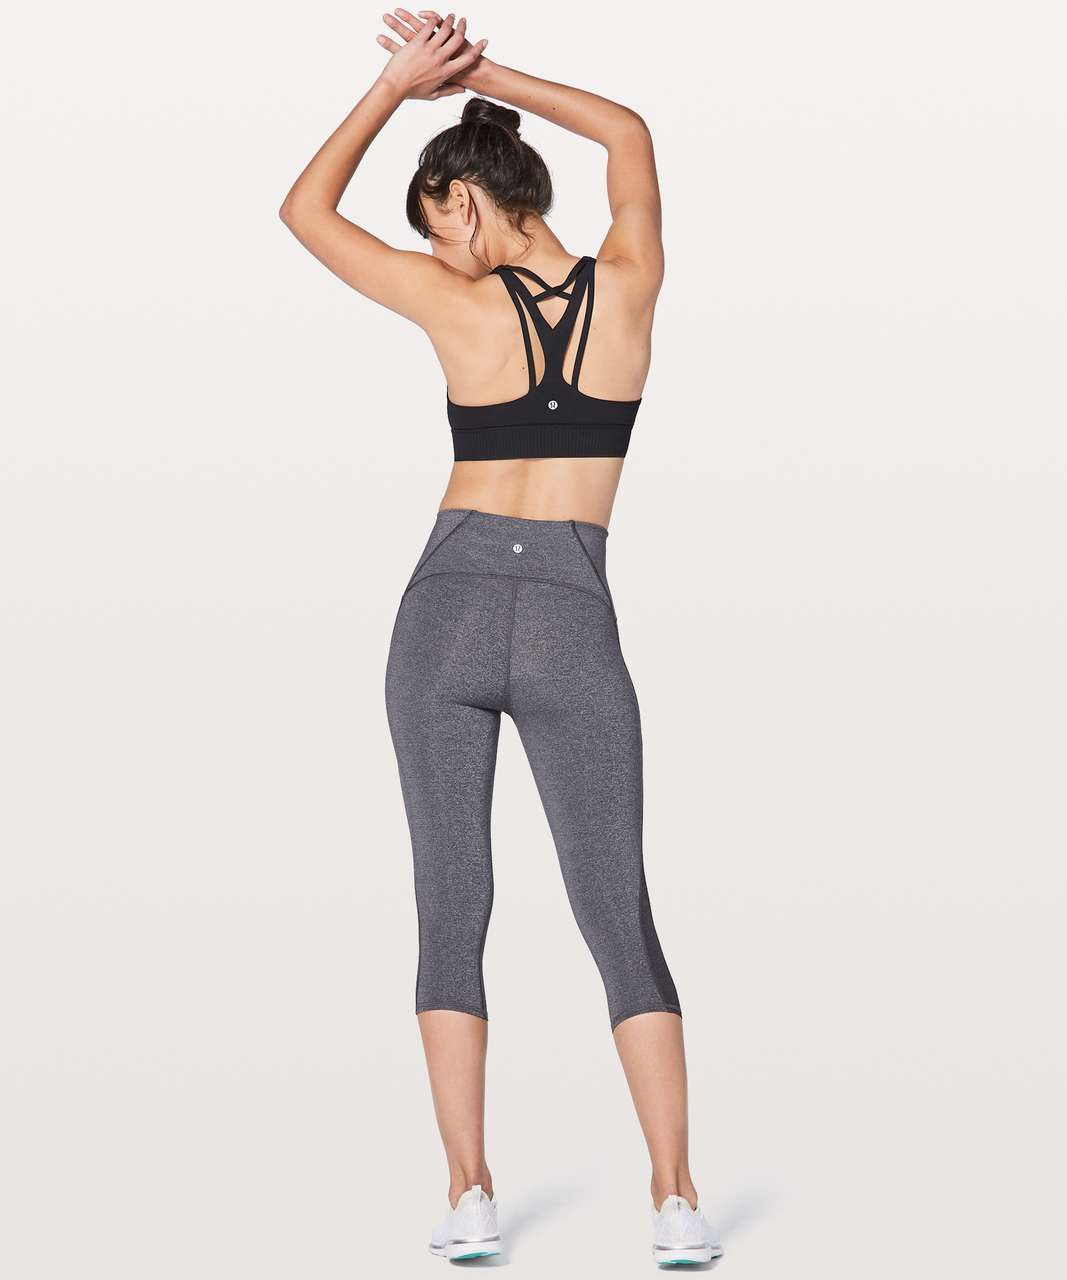 Lululemon Keep Your Form Bra - Black